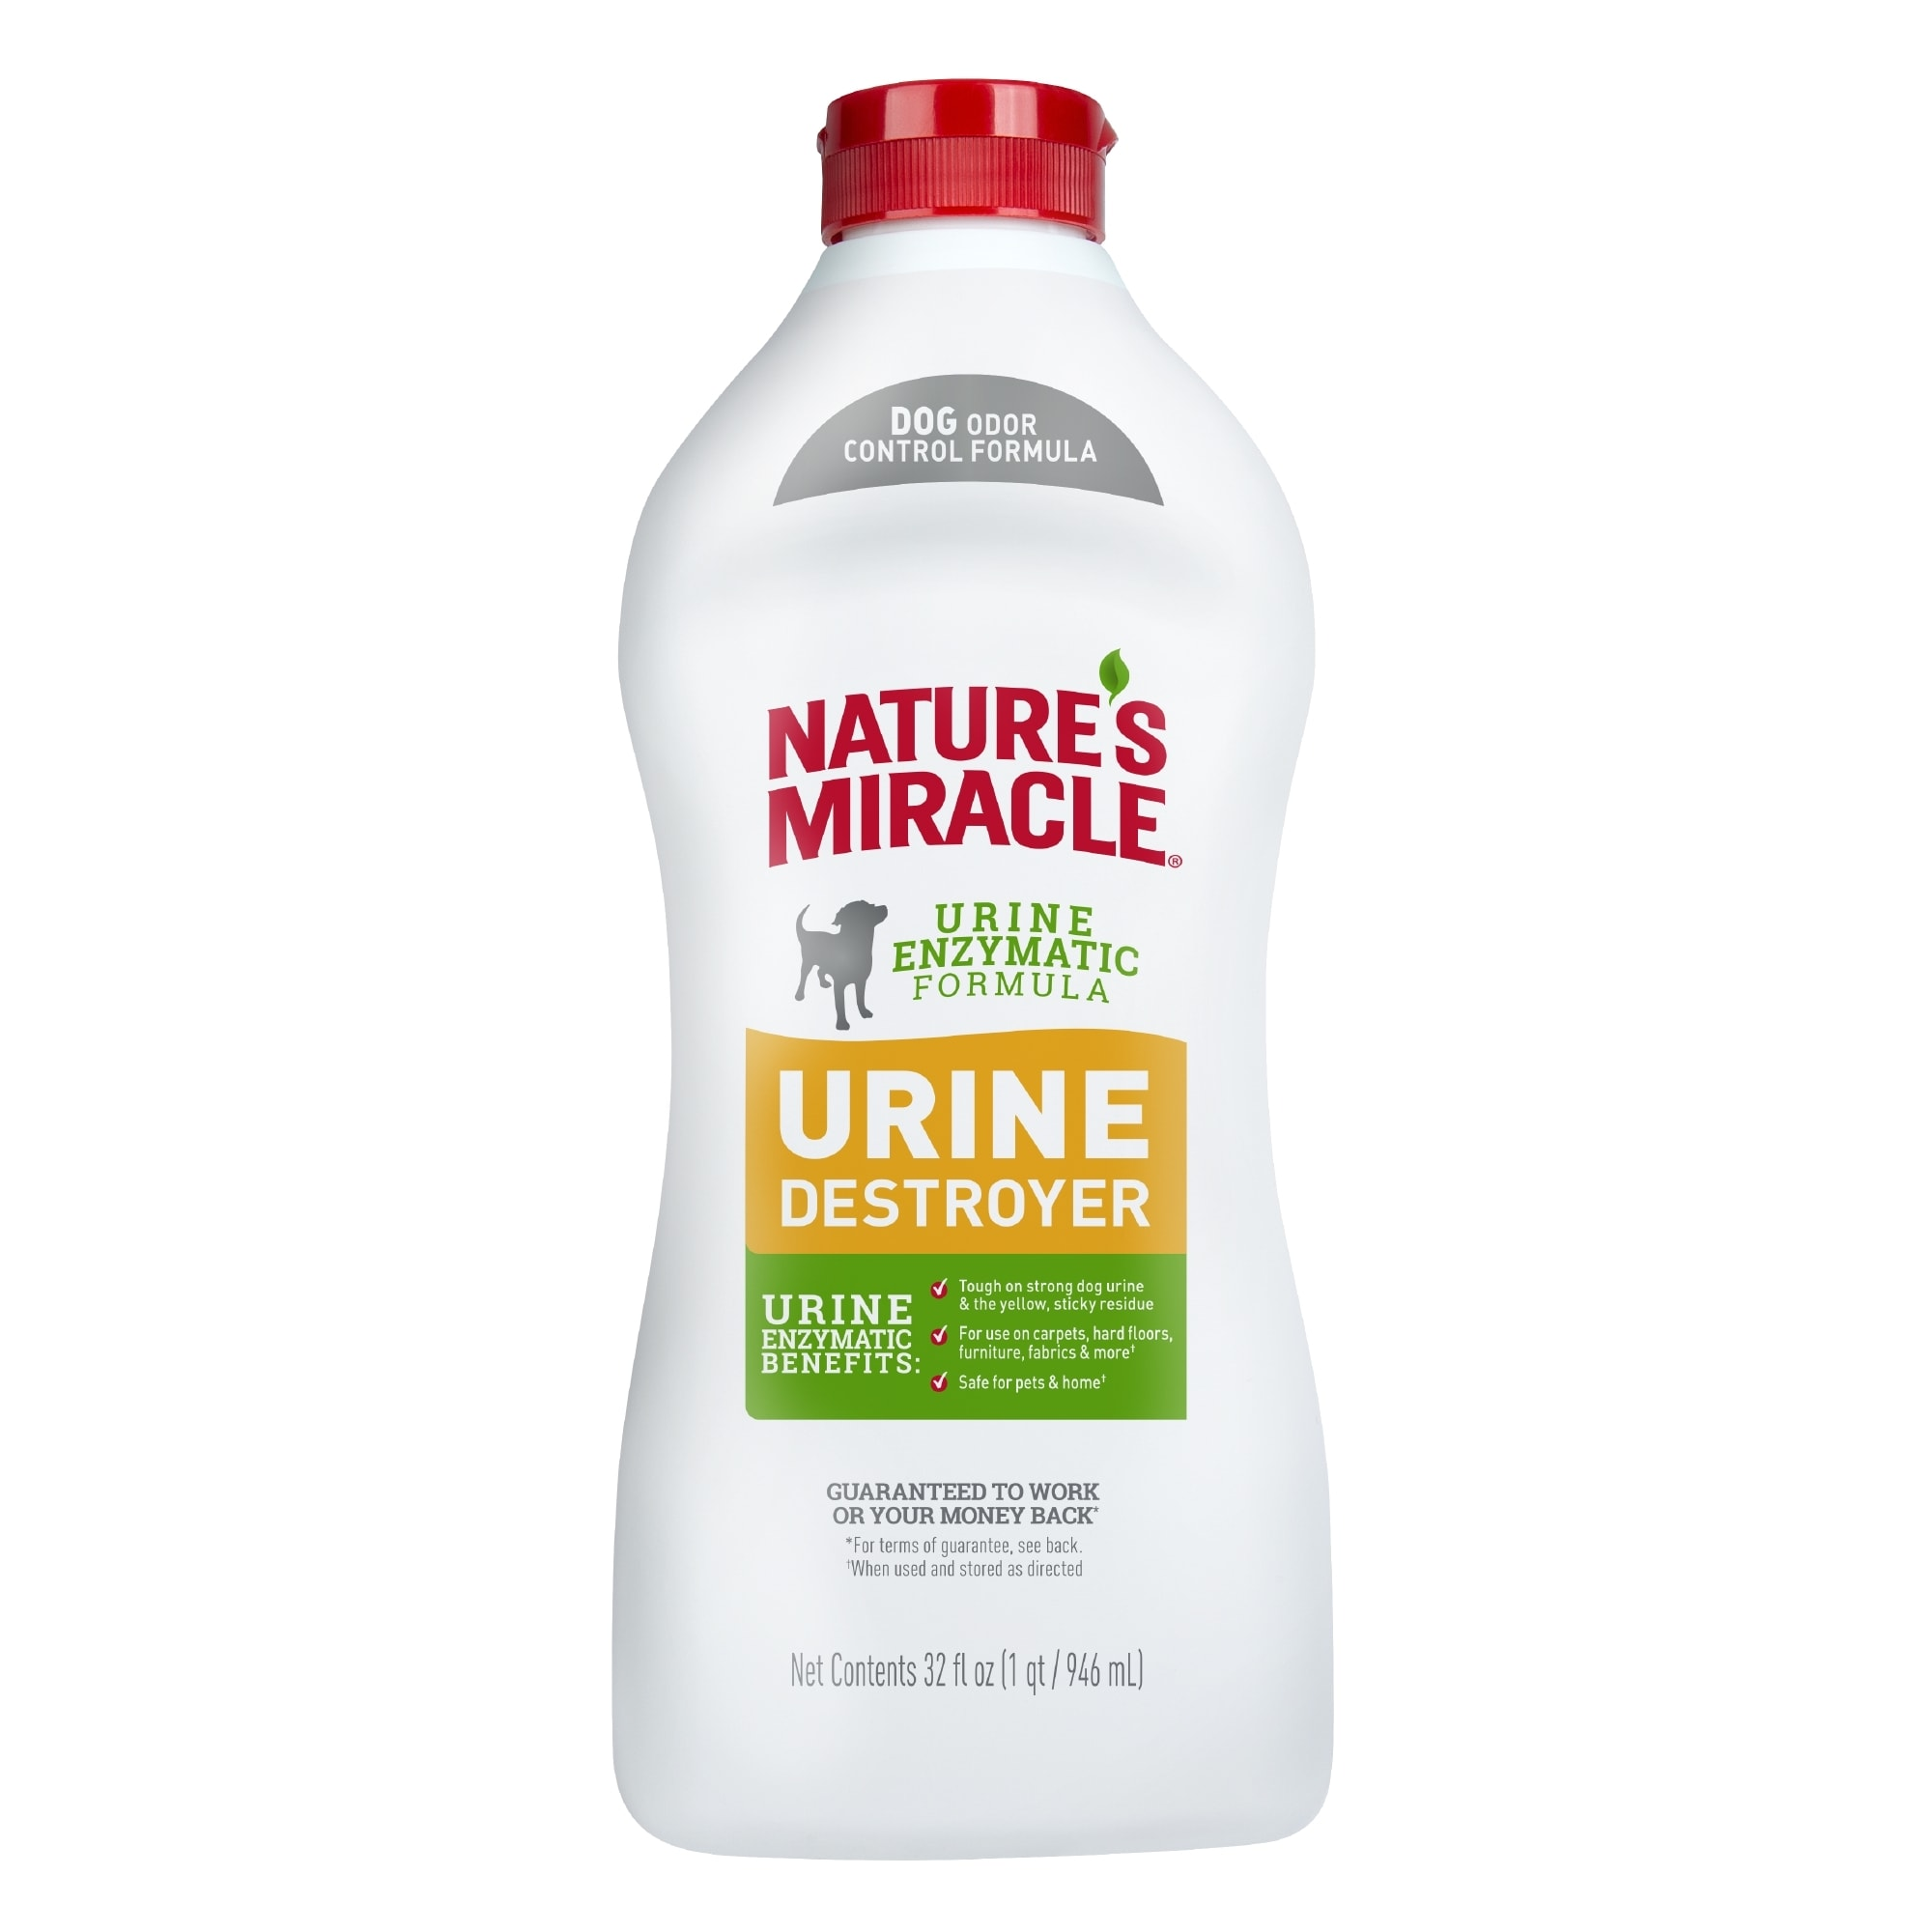 Natural Carpet Cleaner For Dog Urine Review Home Co